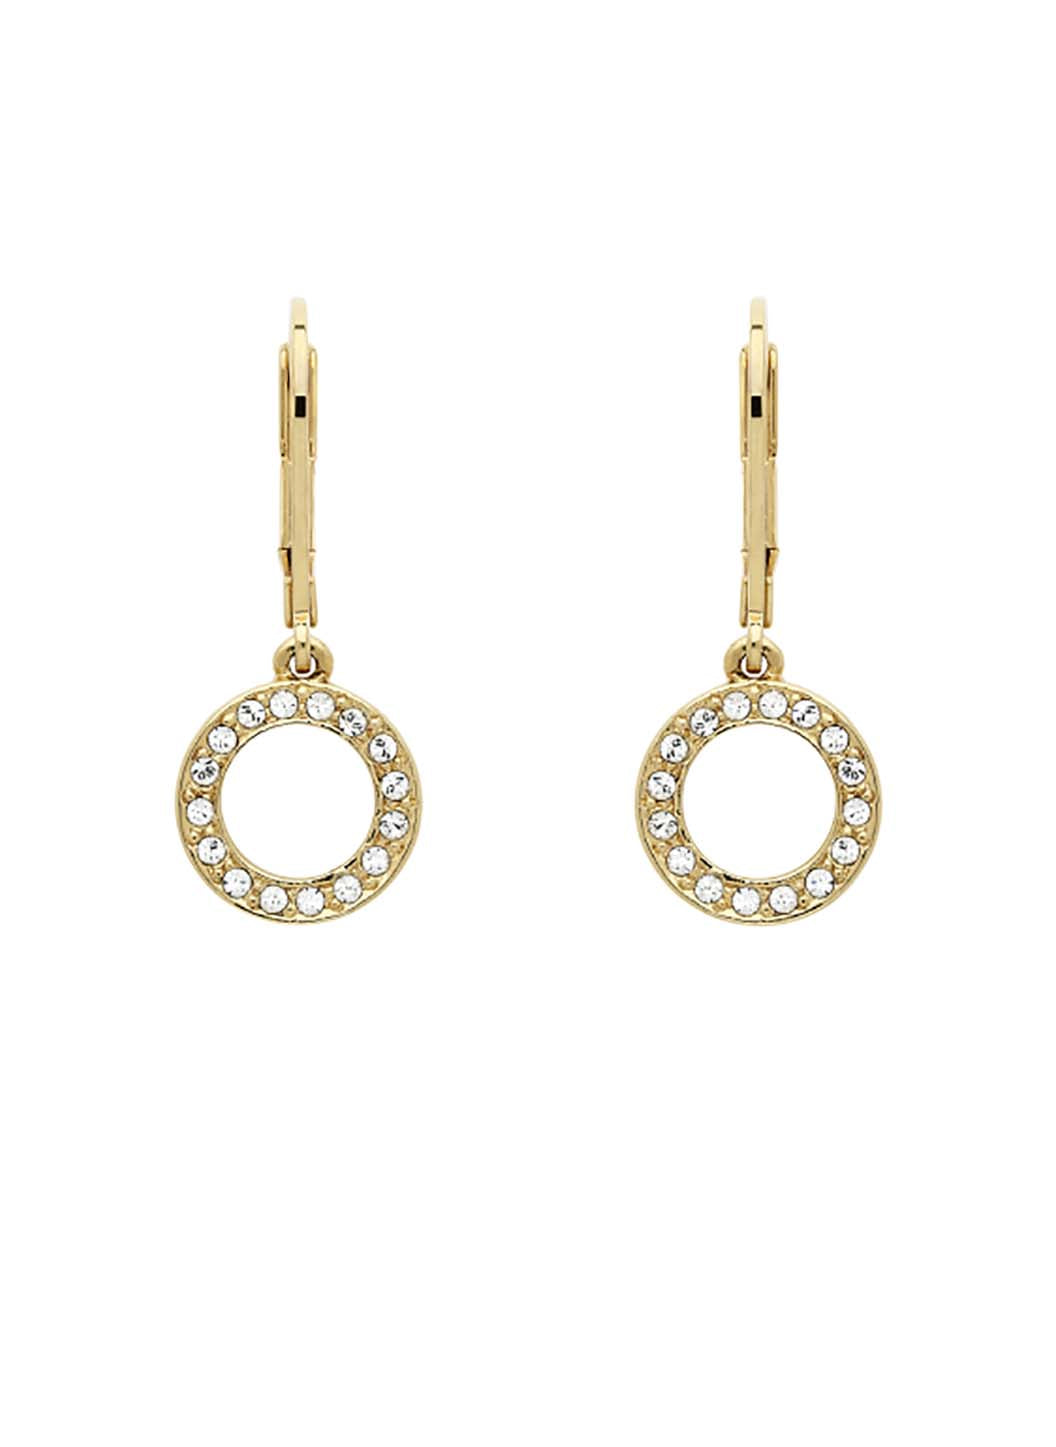 Gold Swarovski Loop Back Earrings